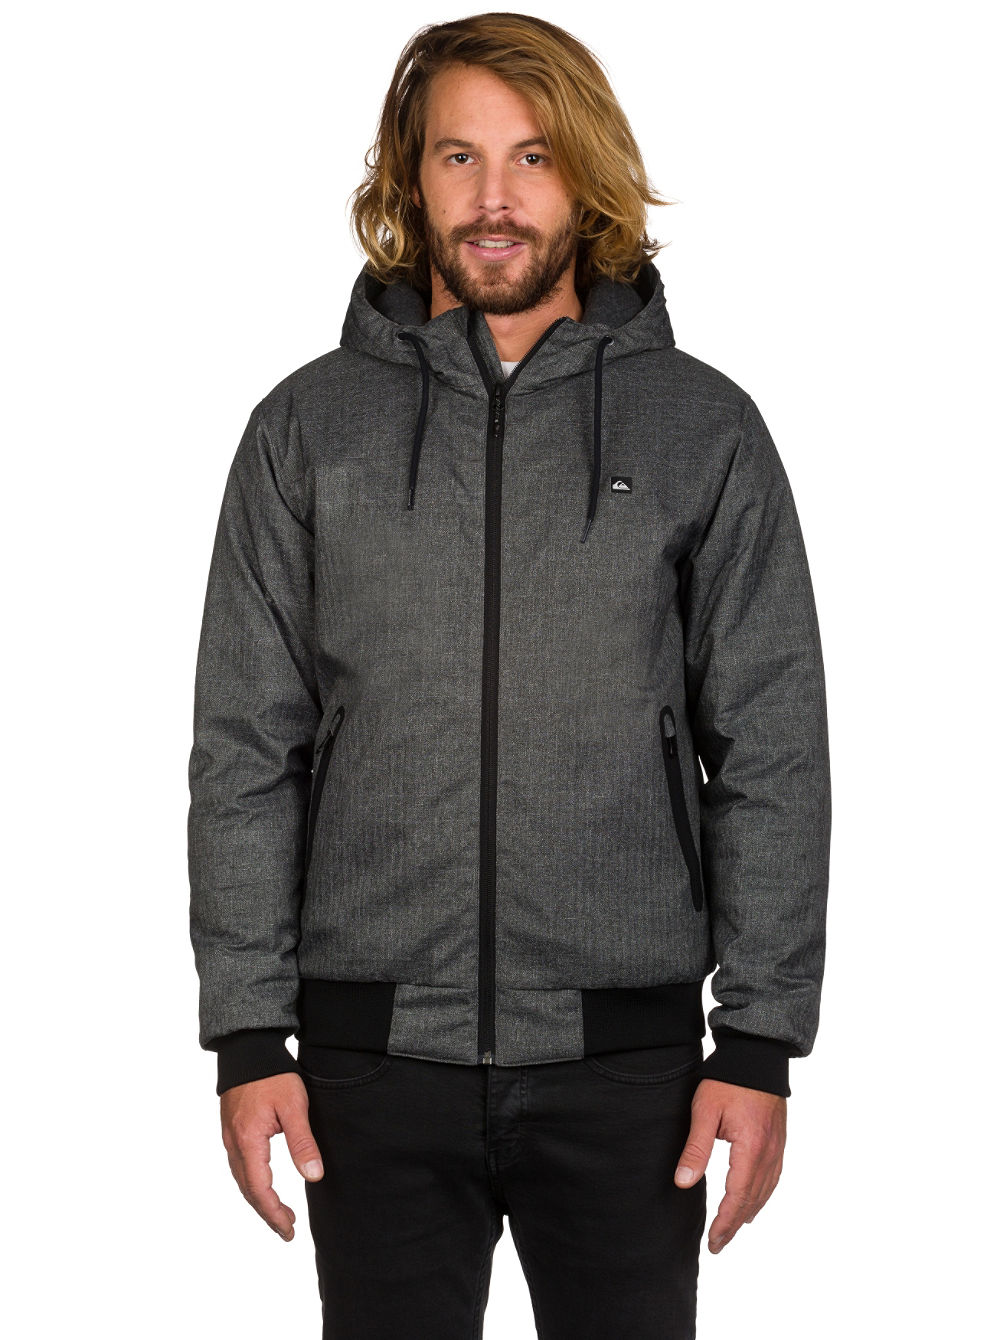 Brooks 5K Jacket